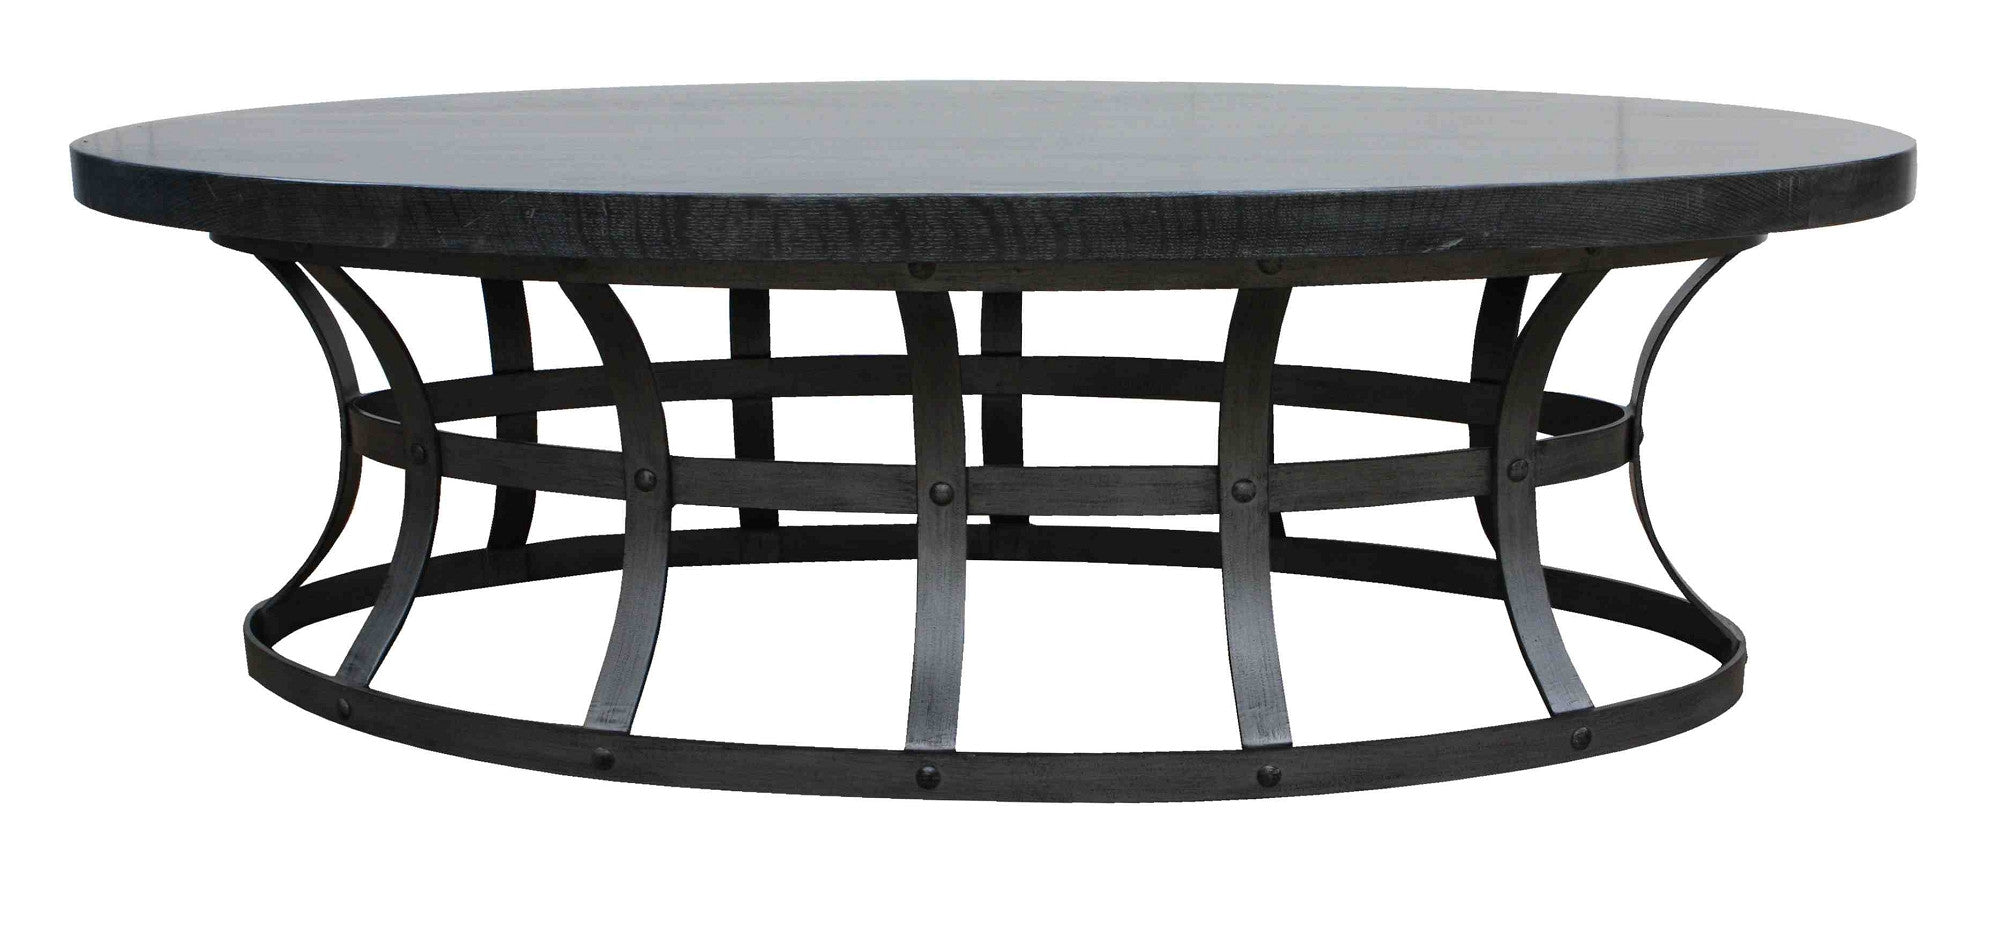 walker oval dining amazon com dp glass edison coffee kitchen table